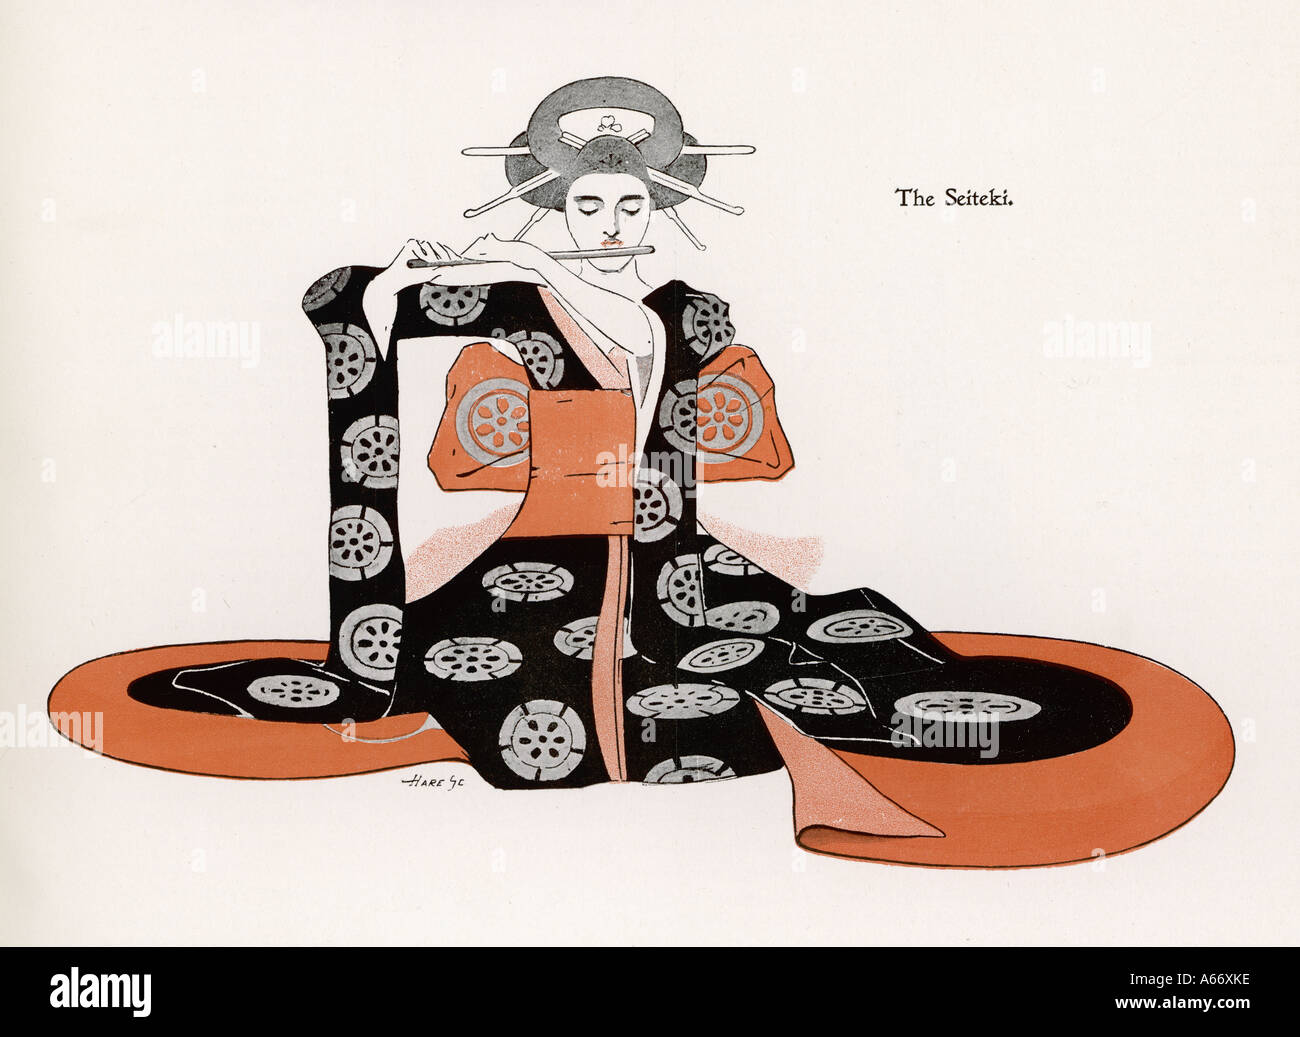 Japan The Seiteki - Stock Image